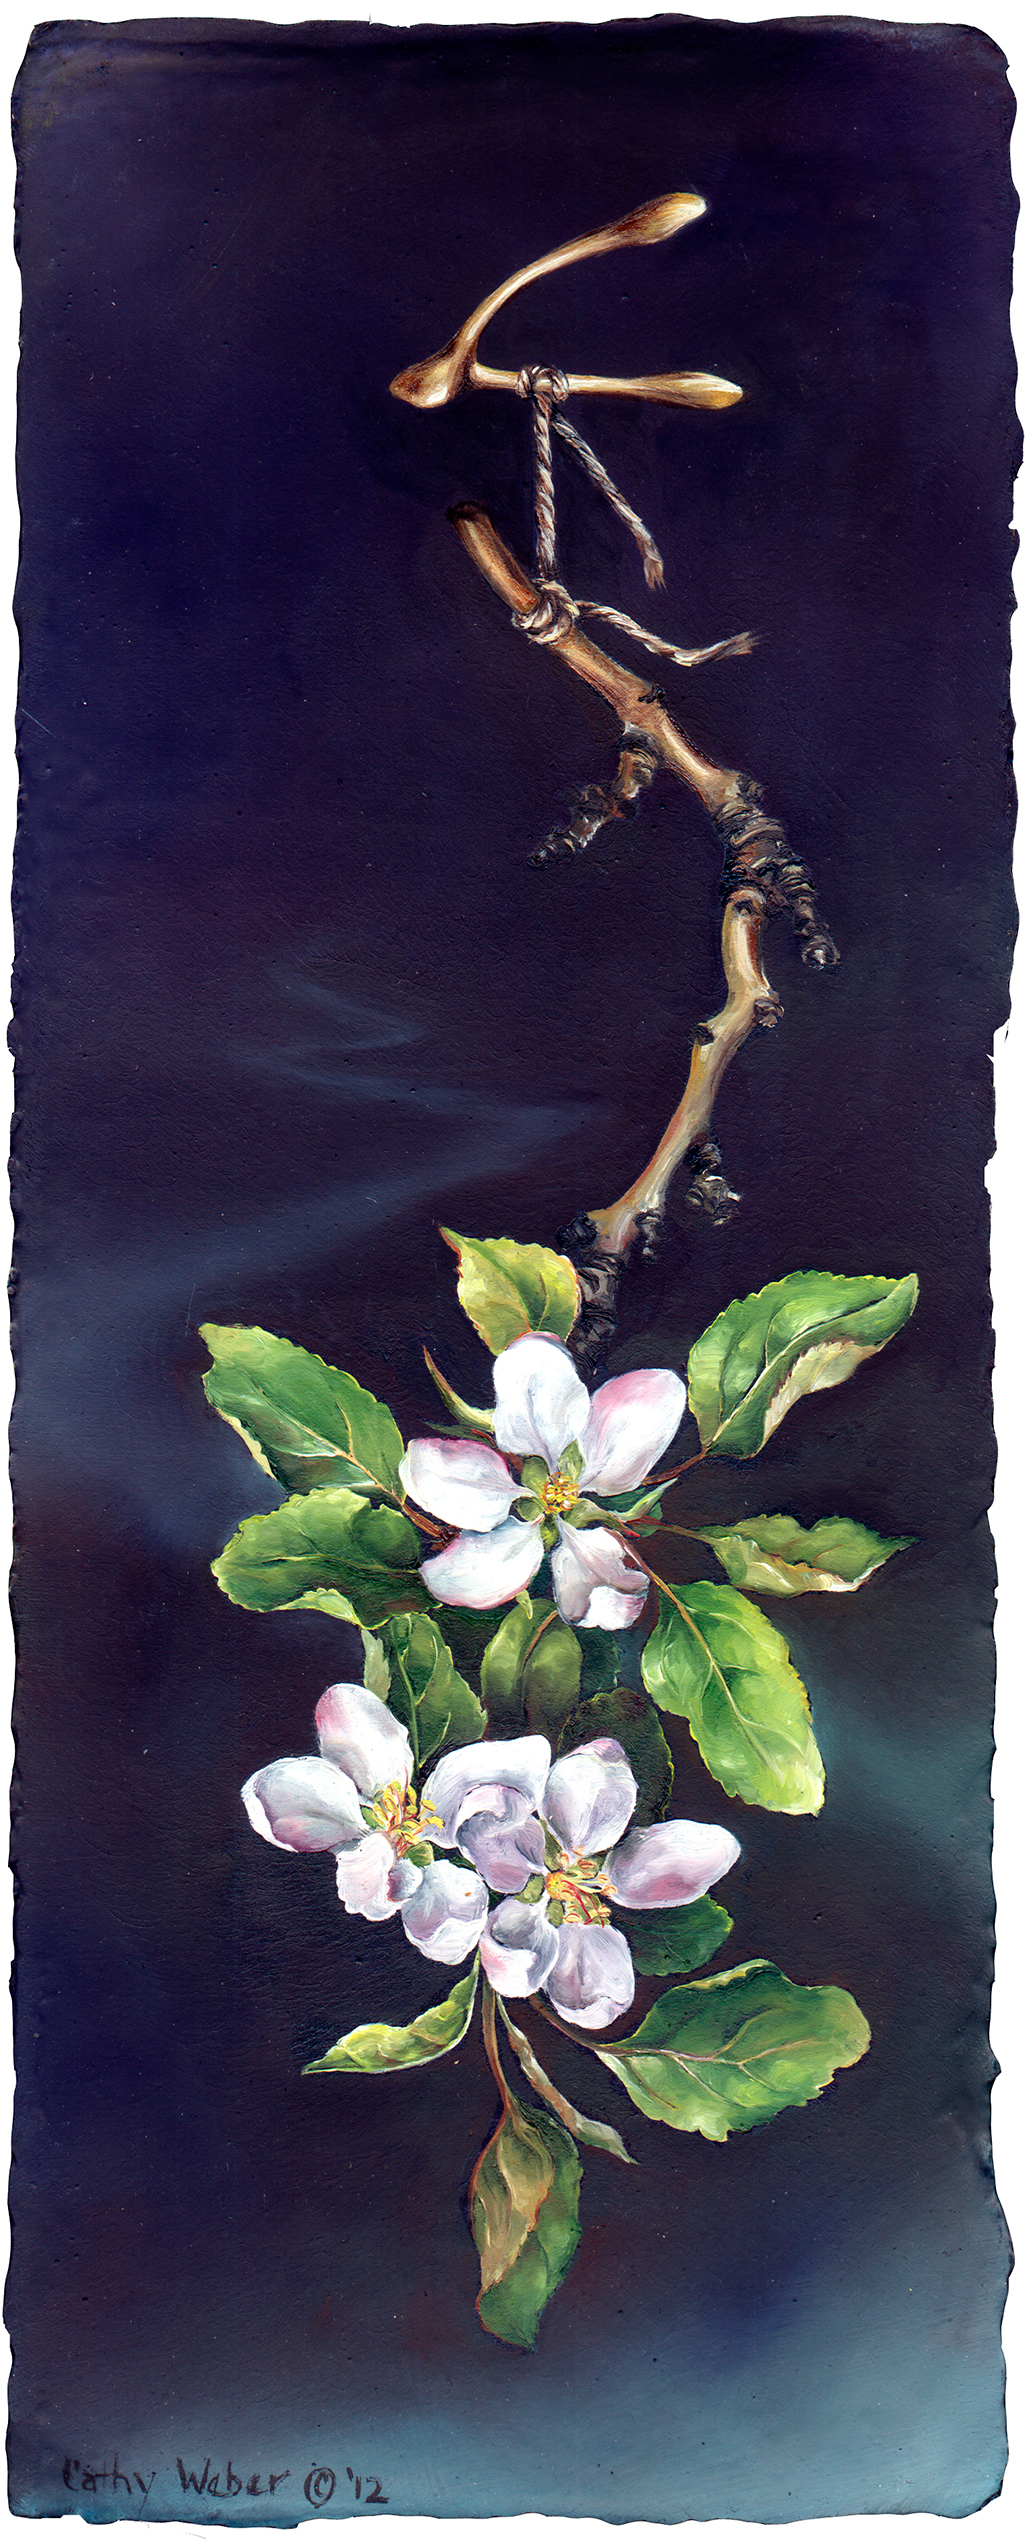 cathy weber - art - painting - woman - oil - montana - painting - oil - botanical - ribbon - apple - blossom - river - oil painting